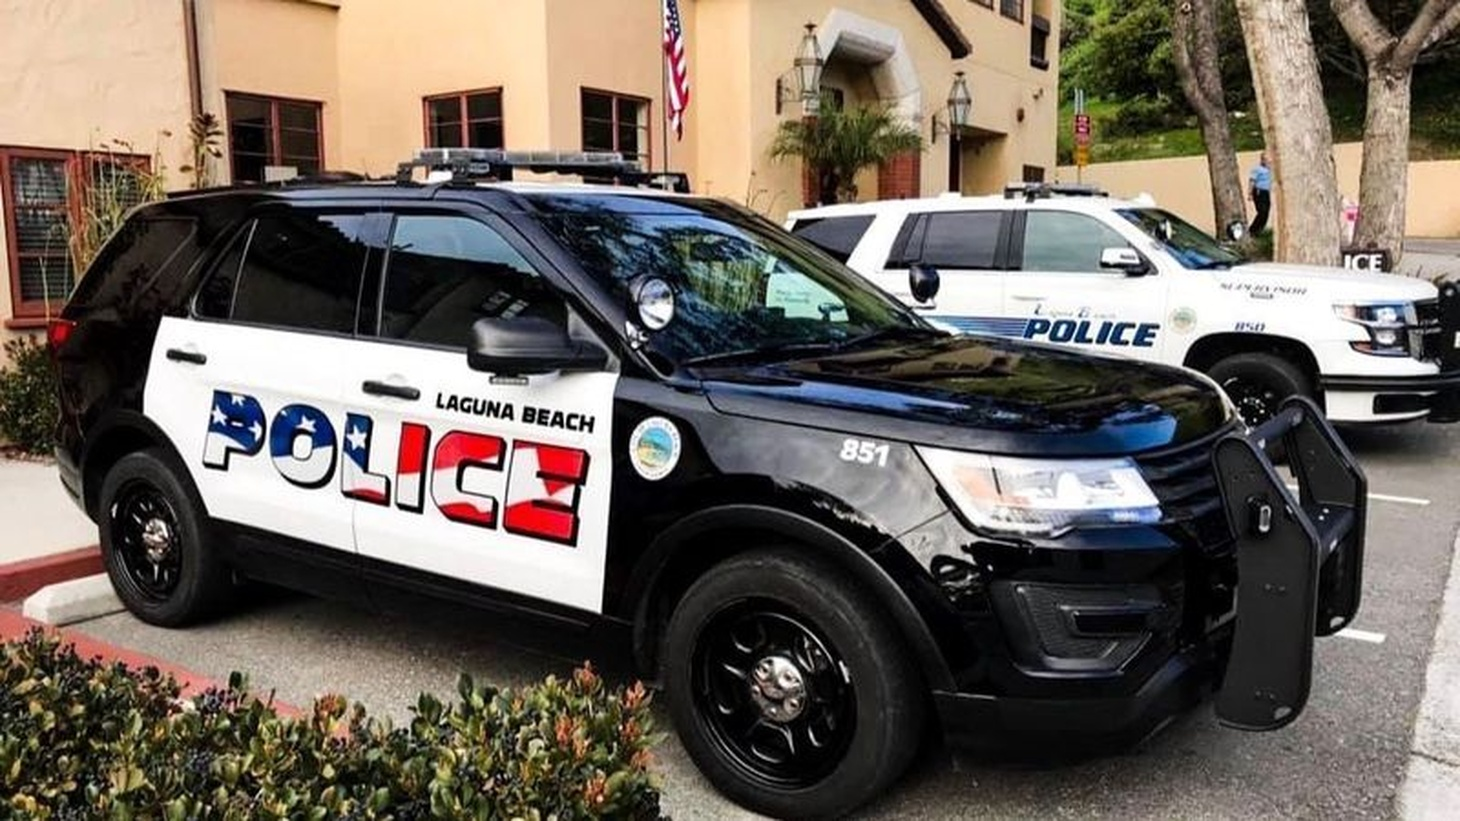 The flag design on Laguna Beach police cars has prompted a debate about whether the community is reflected in the new theme. (Laguna Beach Police Department)